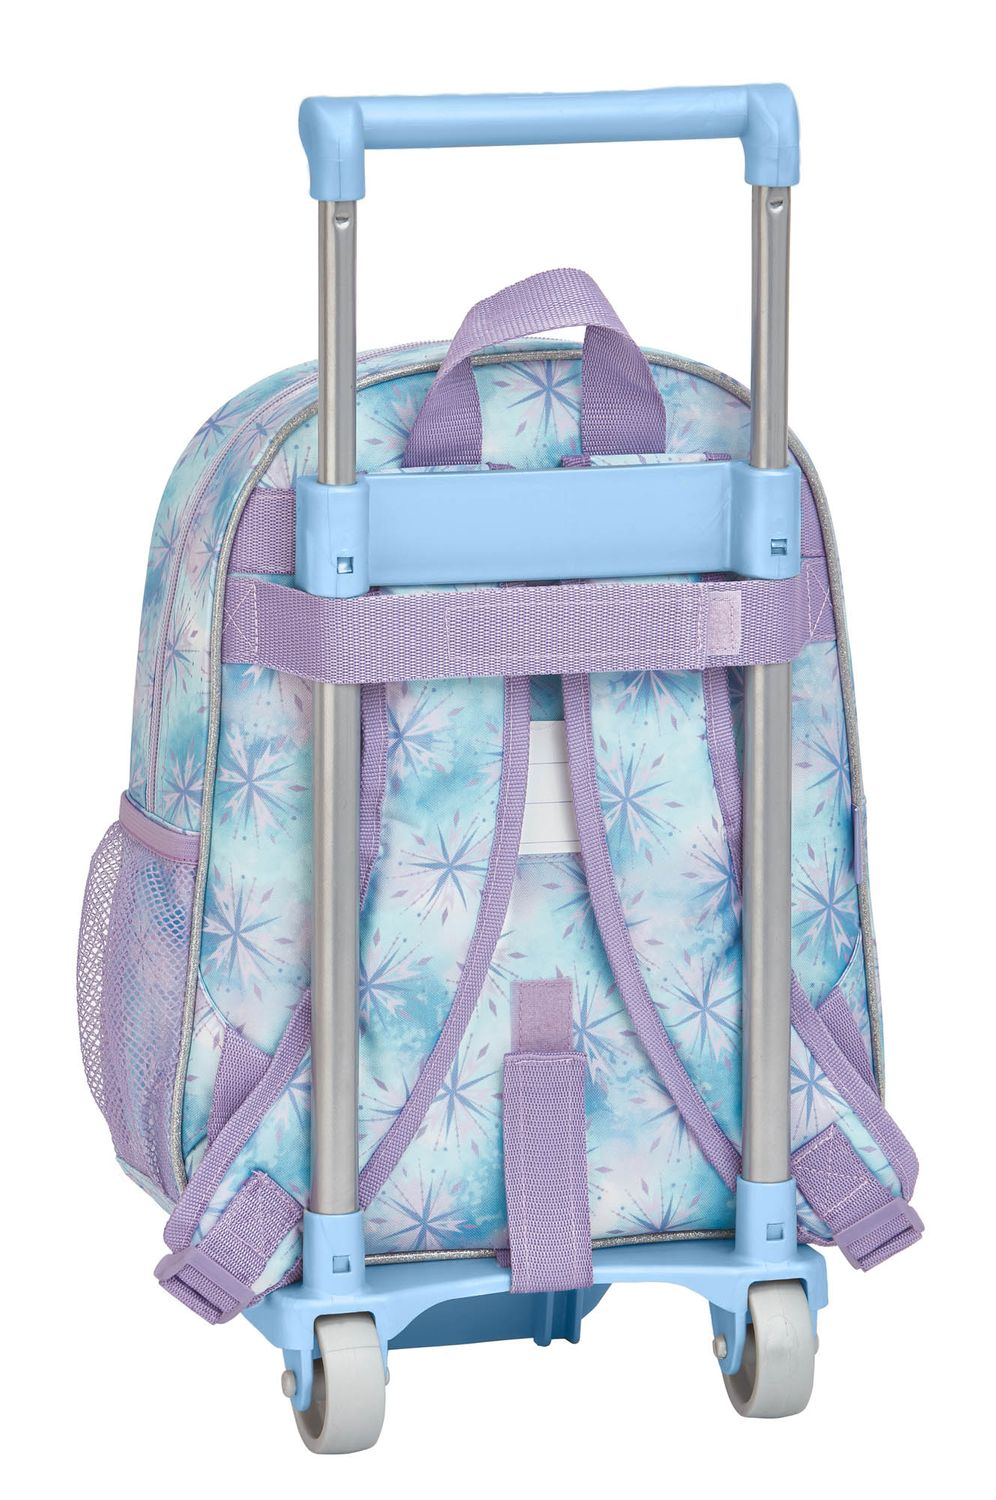 Disney Frozen 2 Junior Backpack With Wheels – image 2